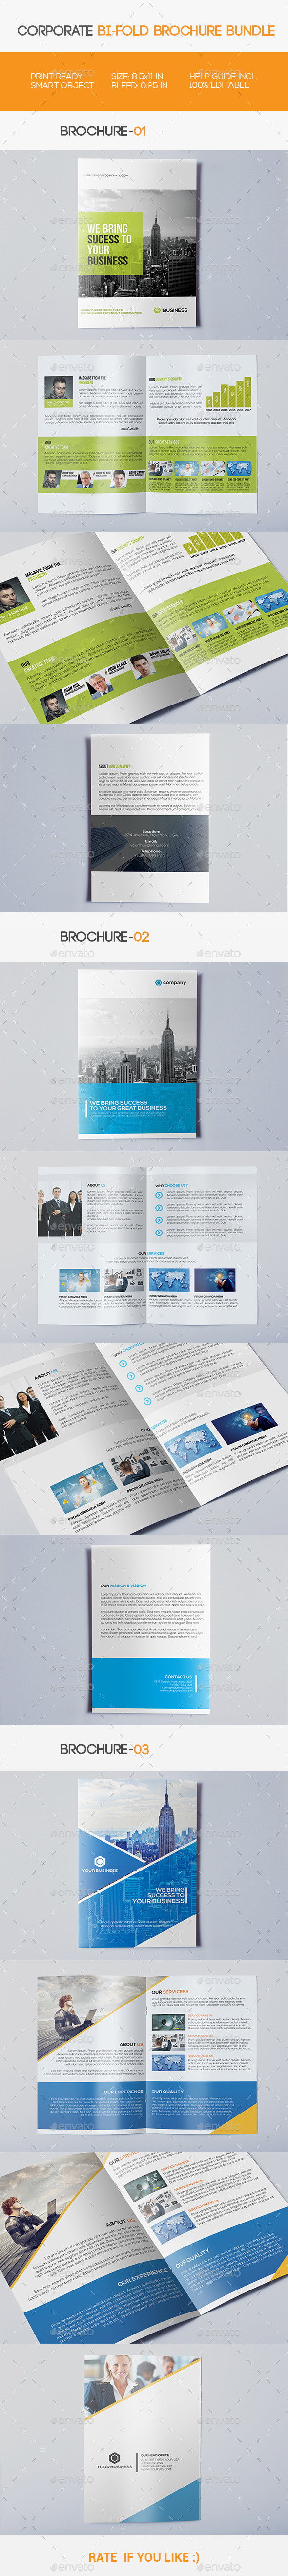 GraphicRiver Corporate Bi-fold Brochure Bundle 11471927